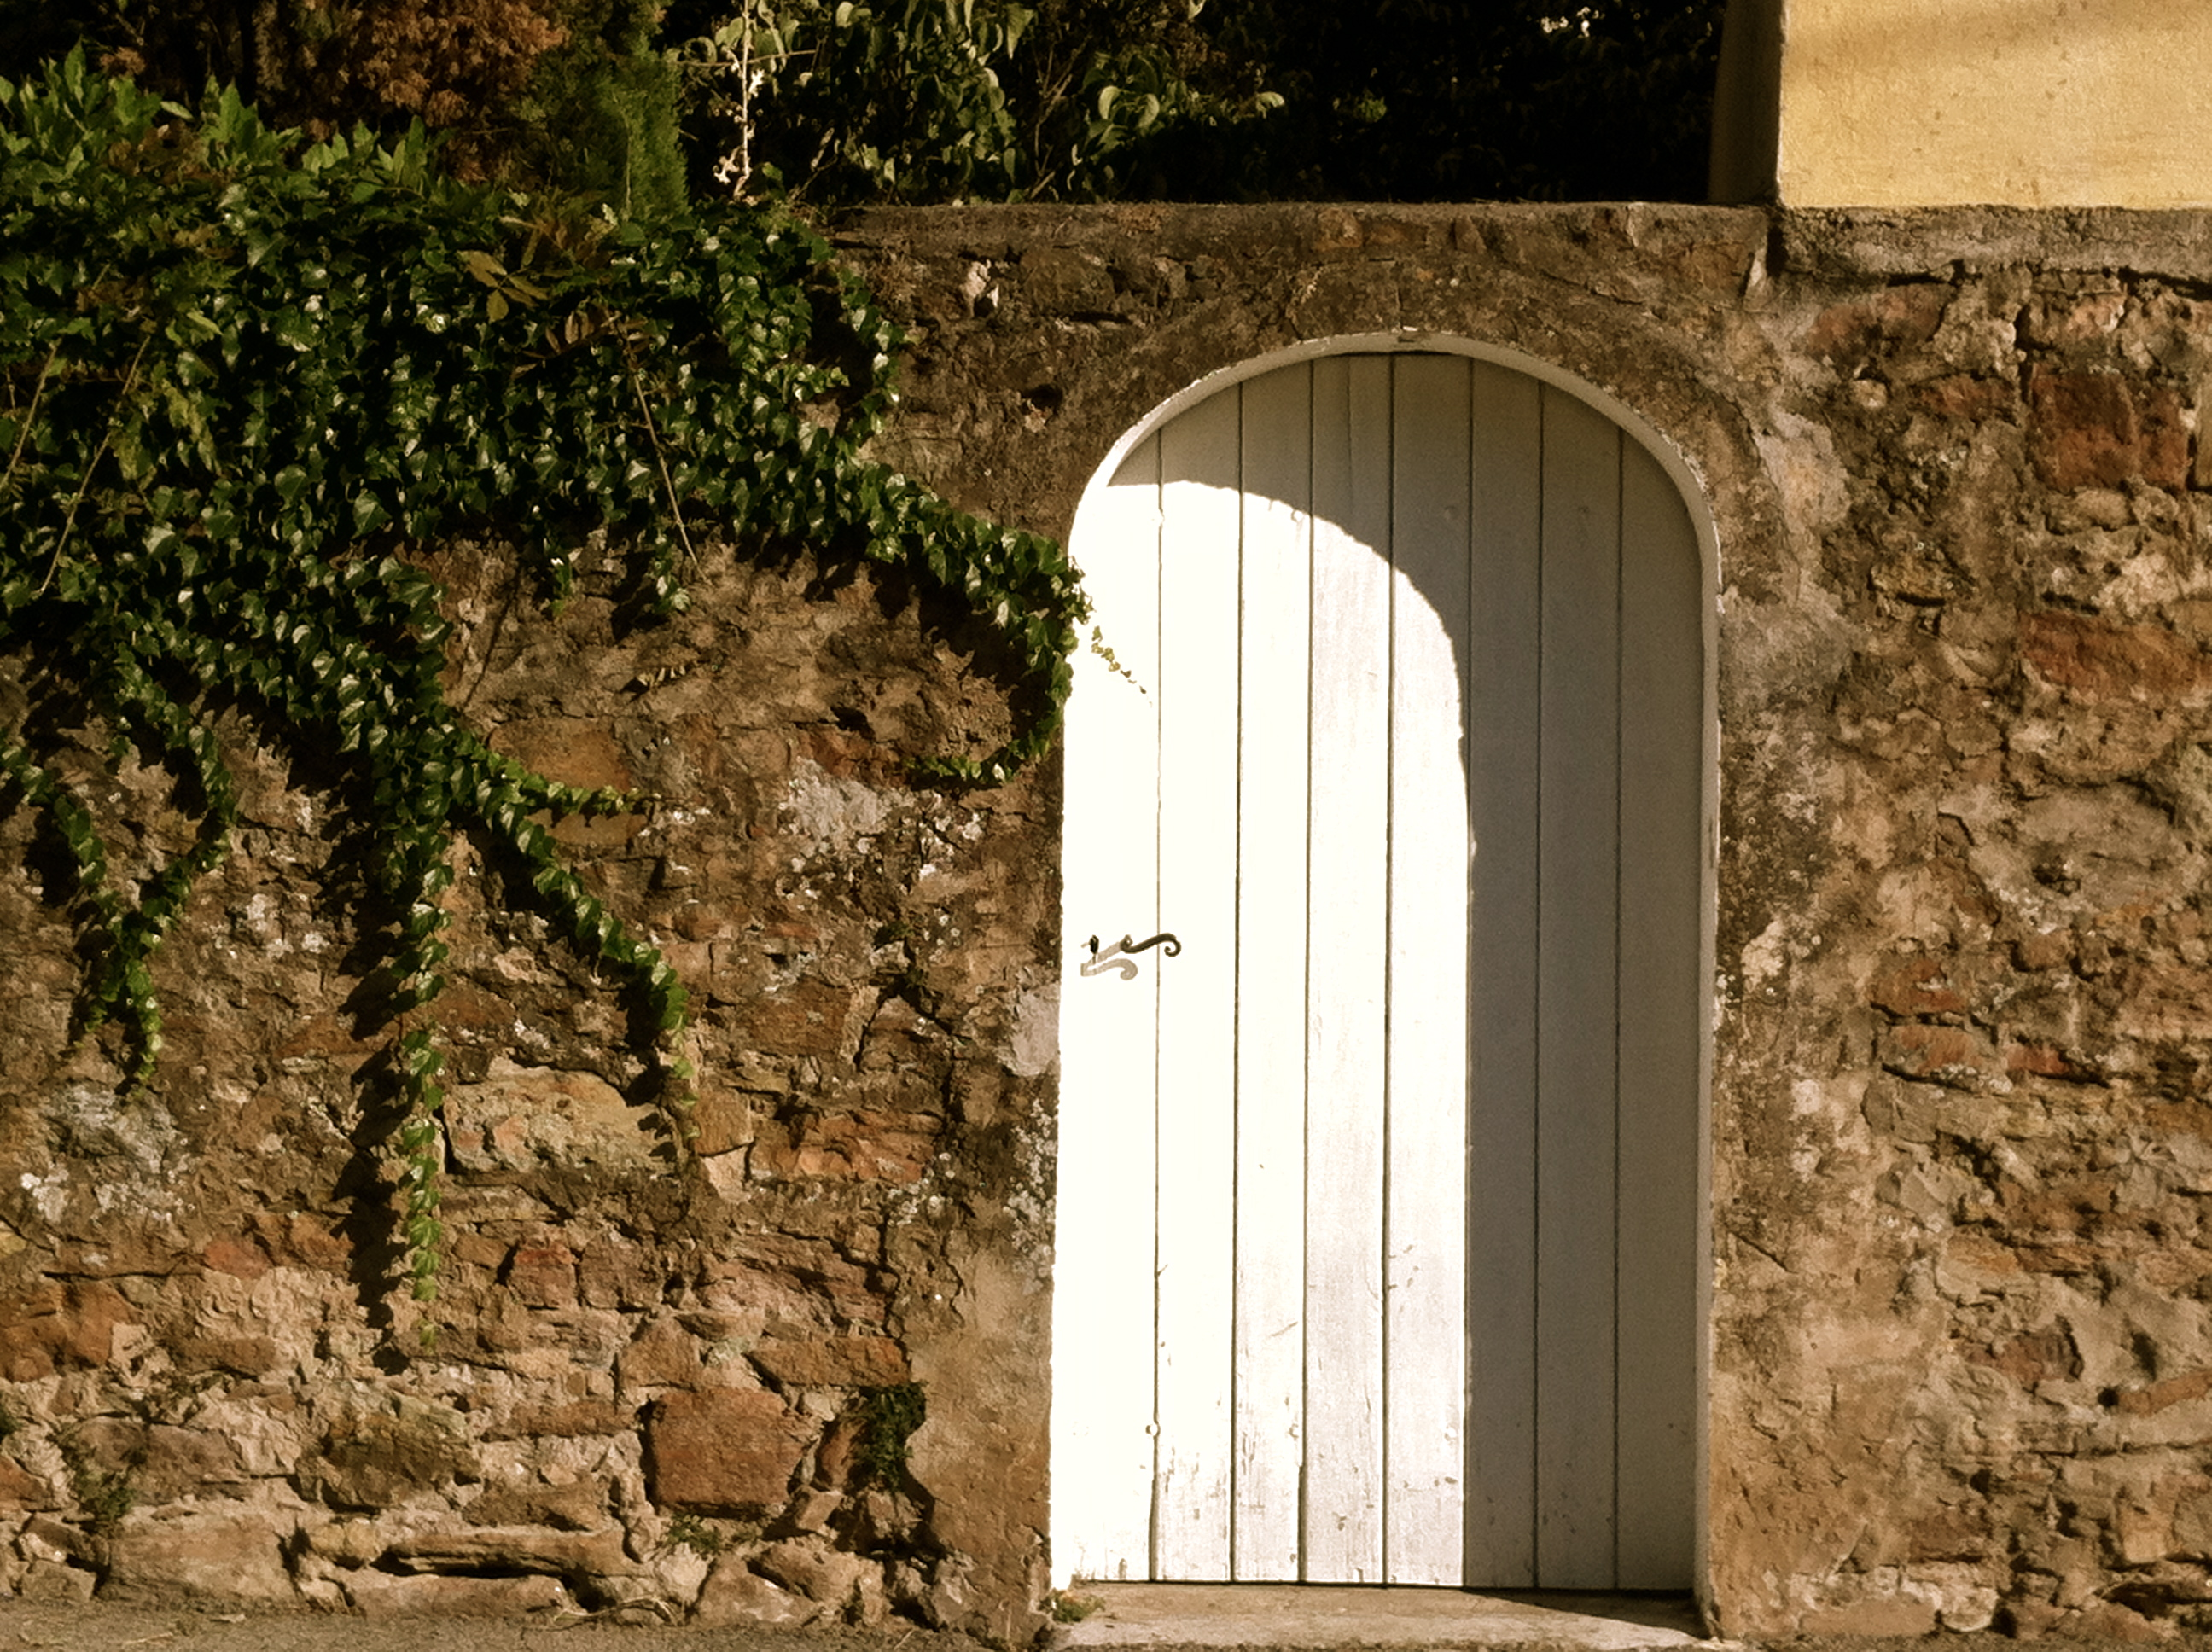 For four years I\u0027ve been walking past this door in this wall on my sister-in-law\u0027s street in Saint Raphael each time we go to the beach or into town for ... & The door in the wall (The Bold Soul: A Writer\u0027s Life in Paris)